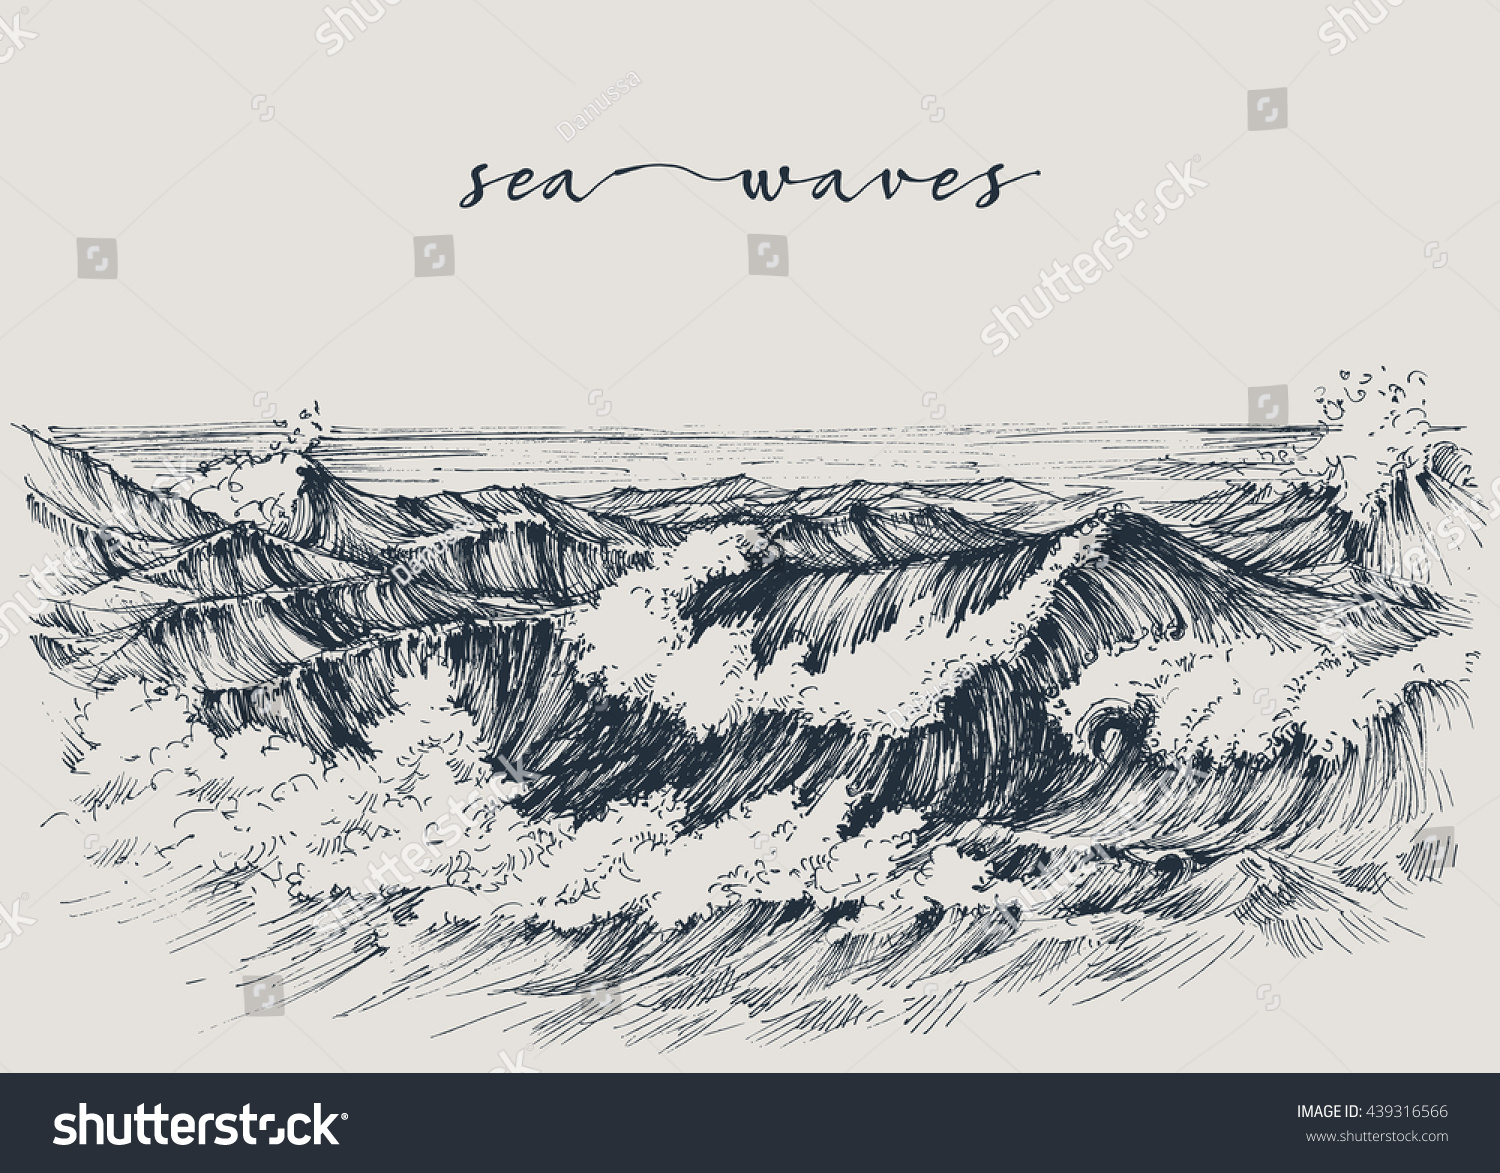 Sea ocean waves drawing sea view stock vector 439316566 shutterstock sea or ocean waves drawing sea view waves breaking on the beach ccuart Gallery